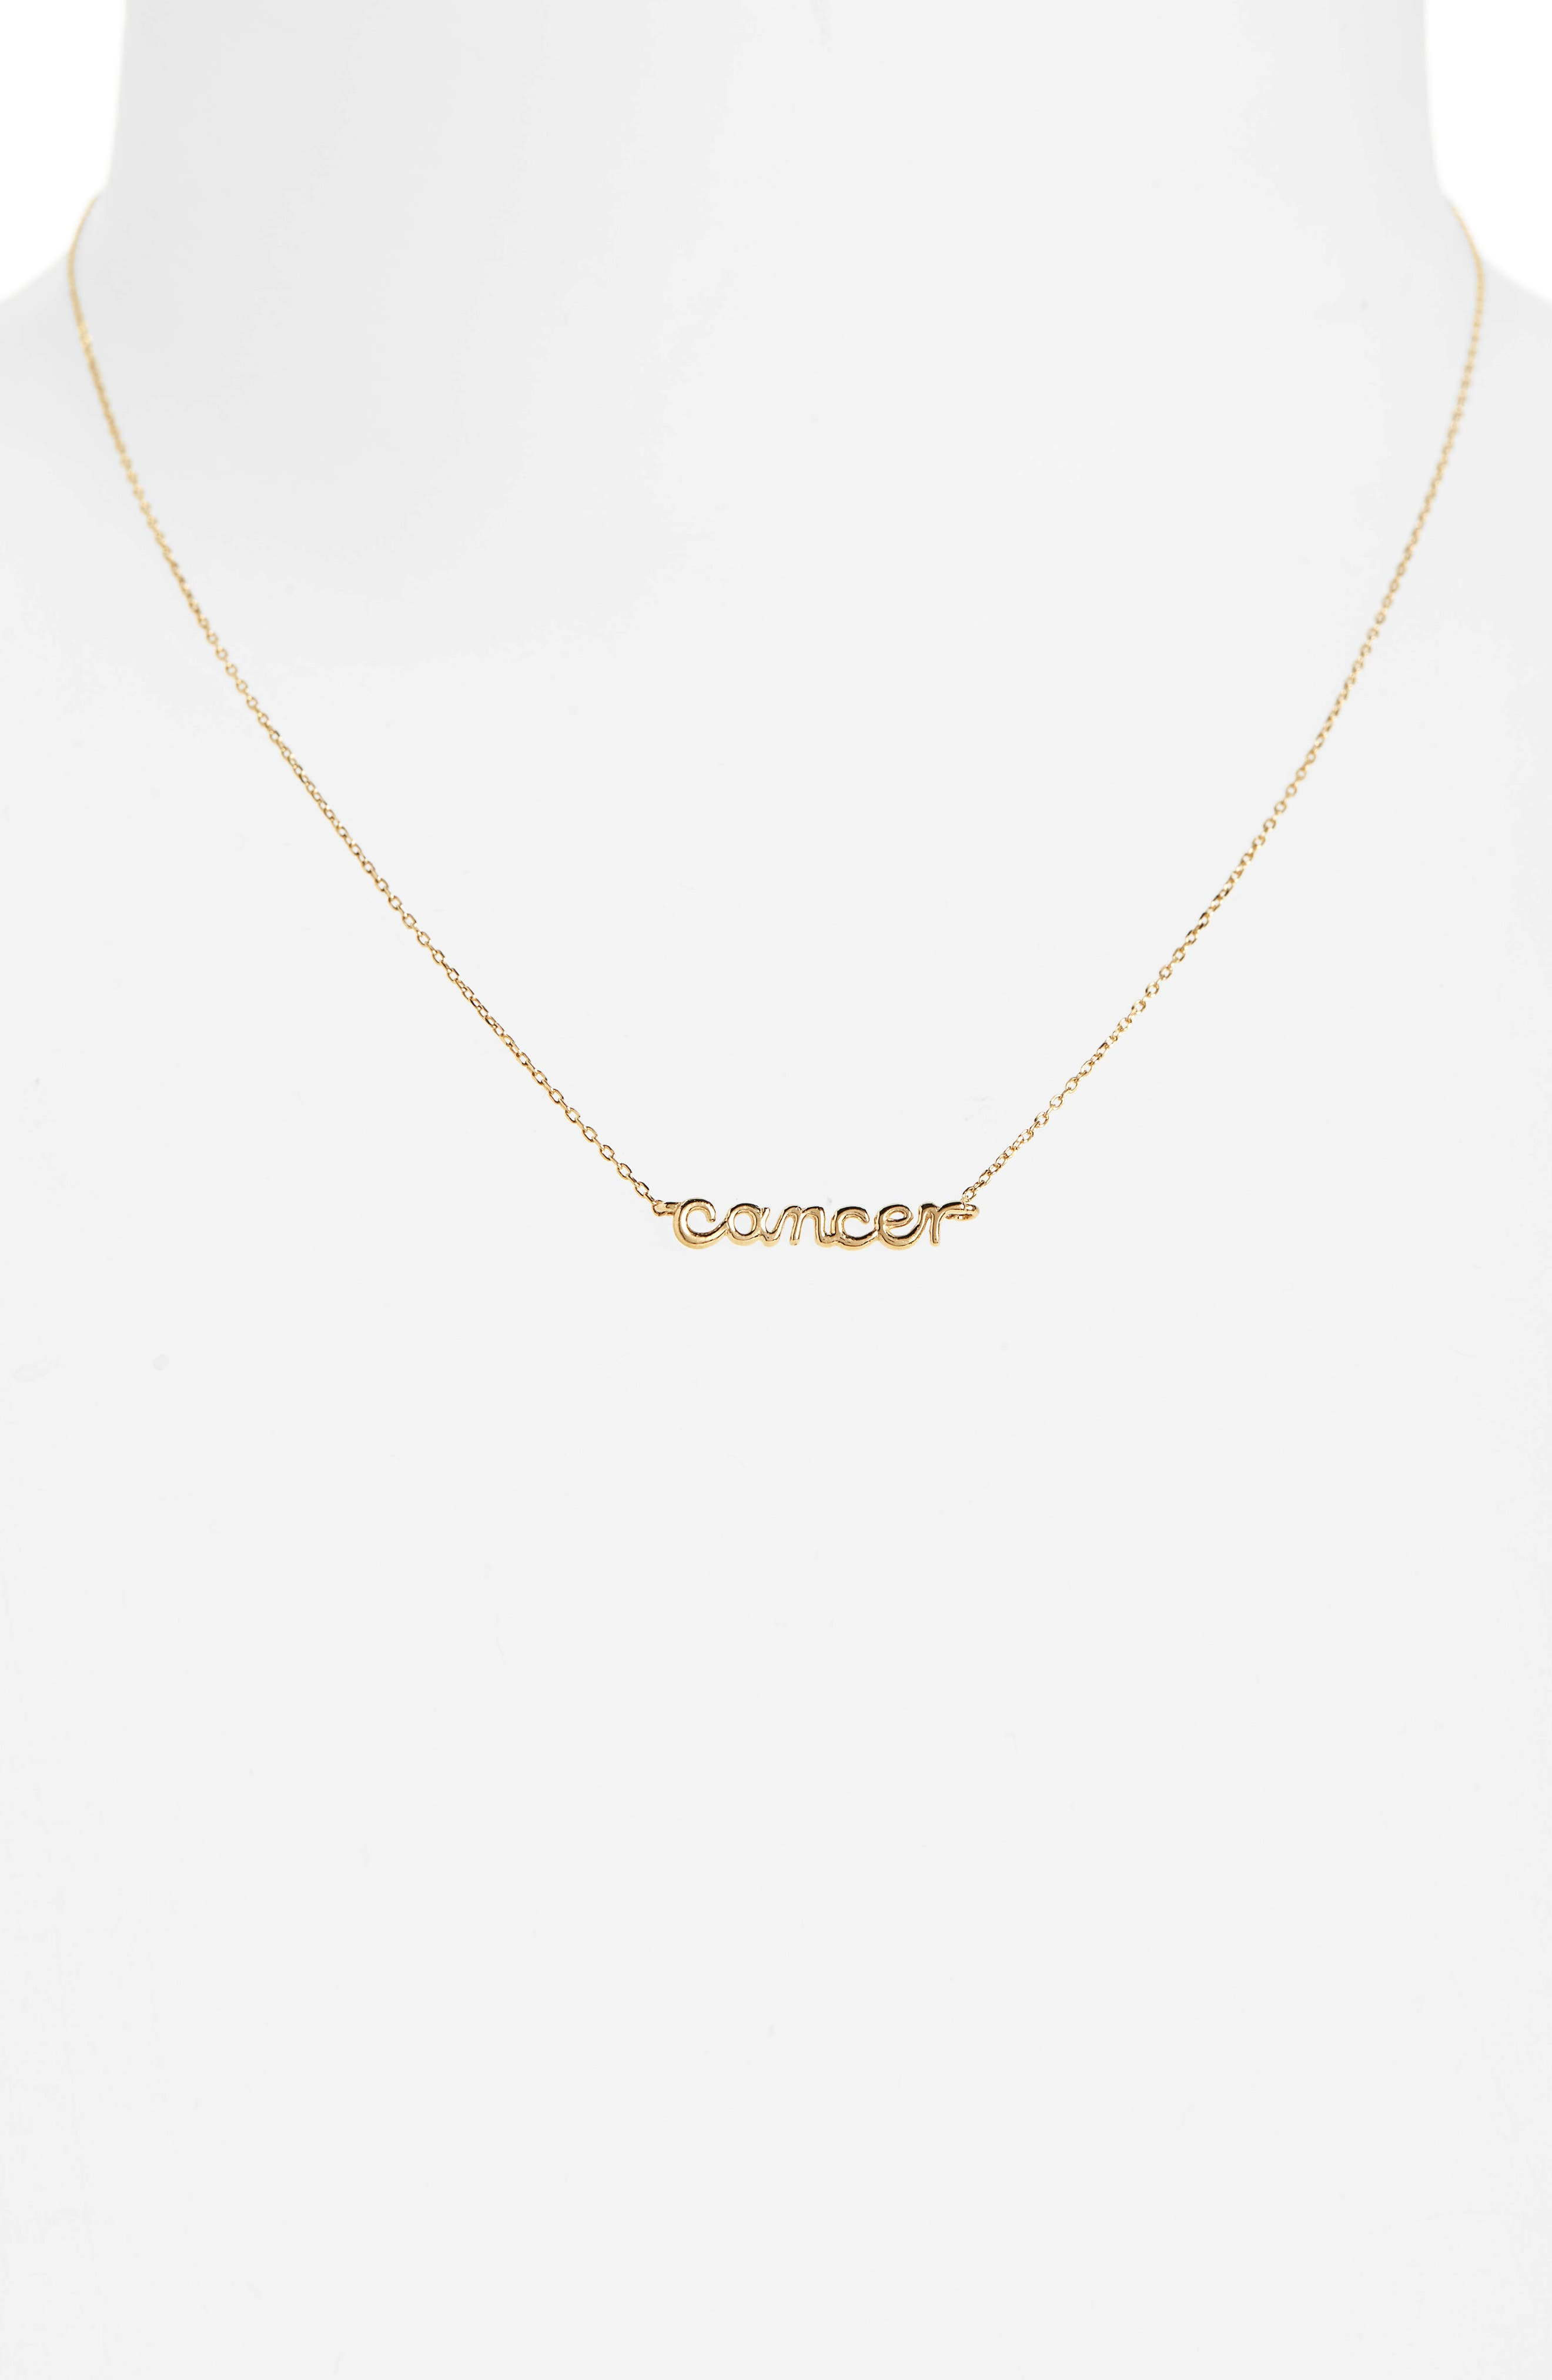 MADEWELL, Vermeil Astrological Sign Necklace, Alternate thumbnail 2, color, 710